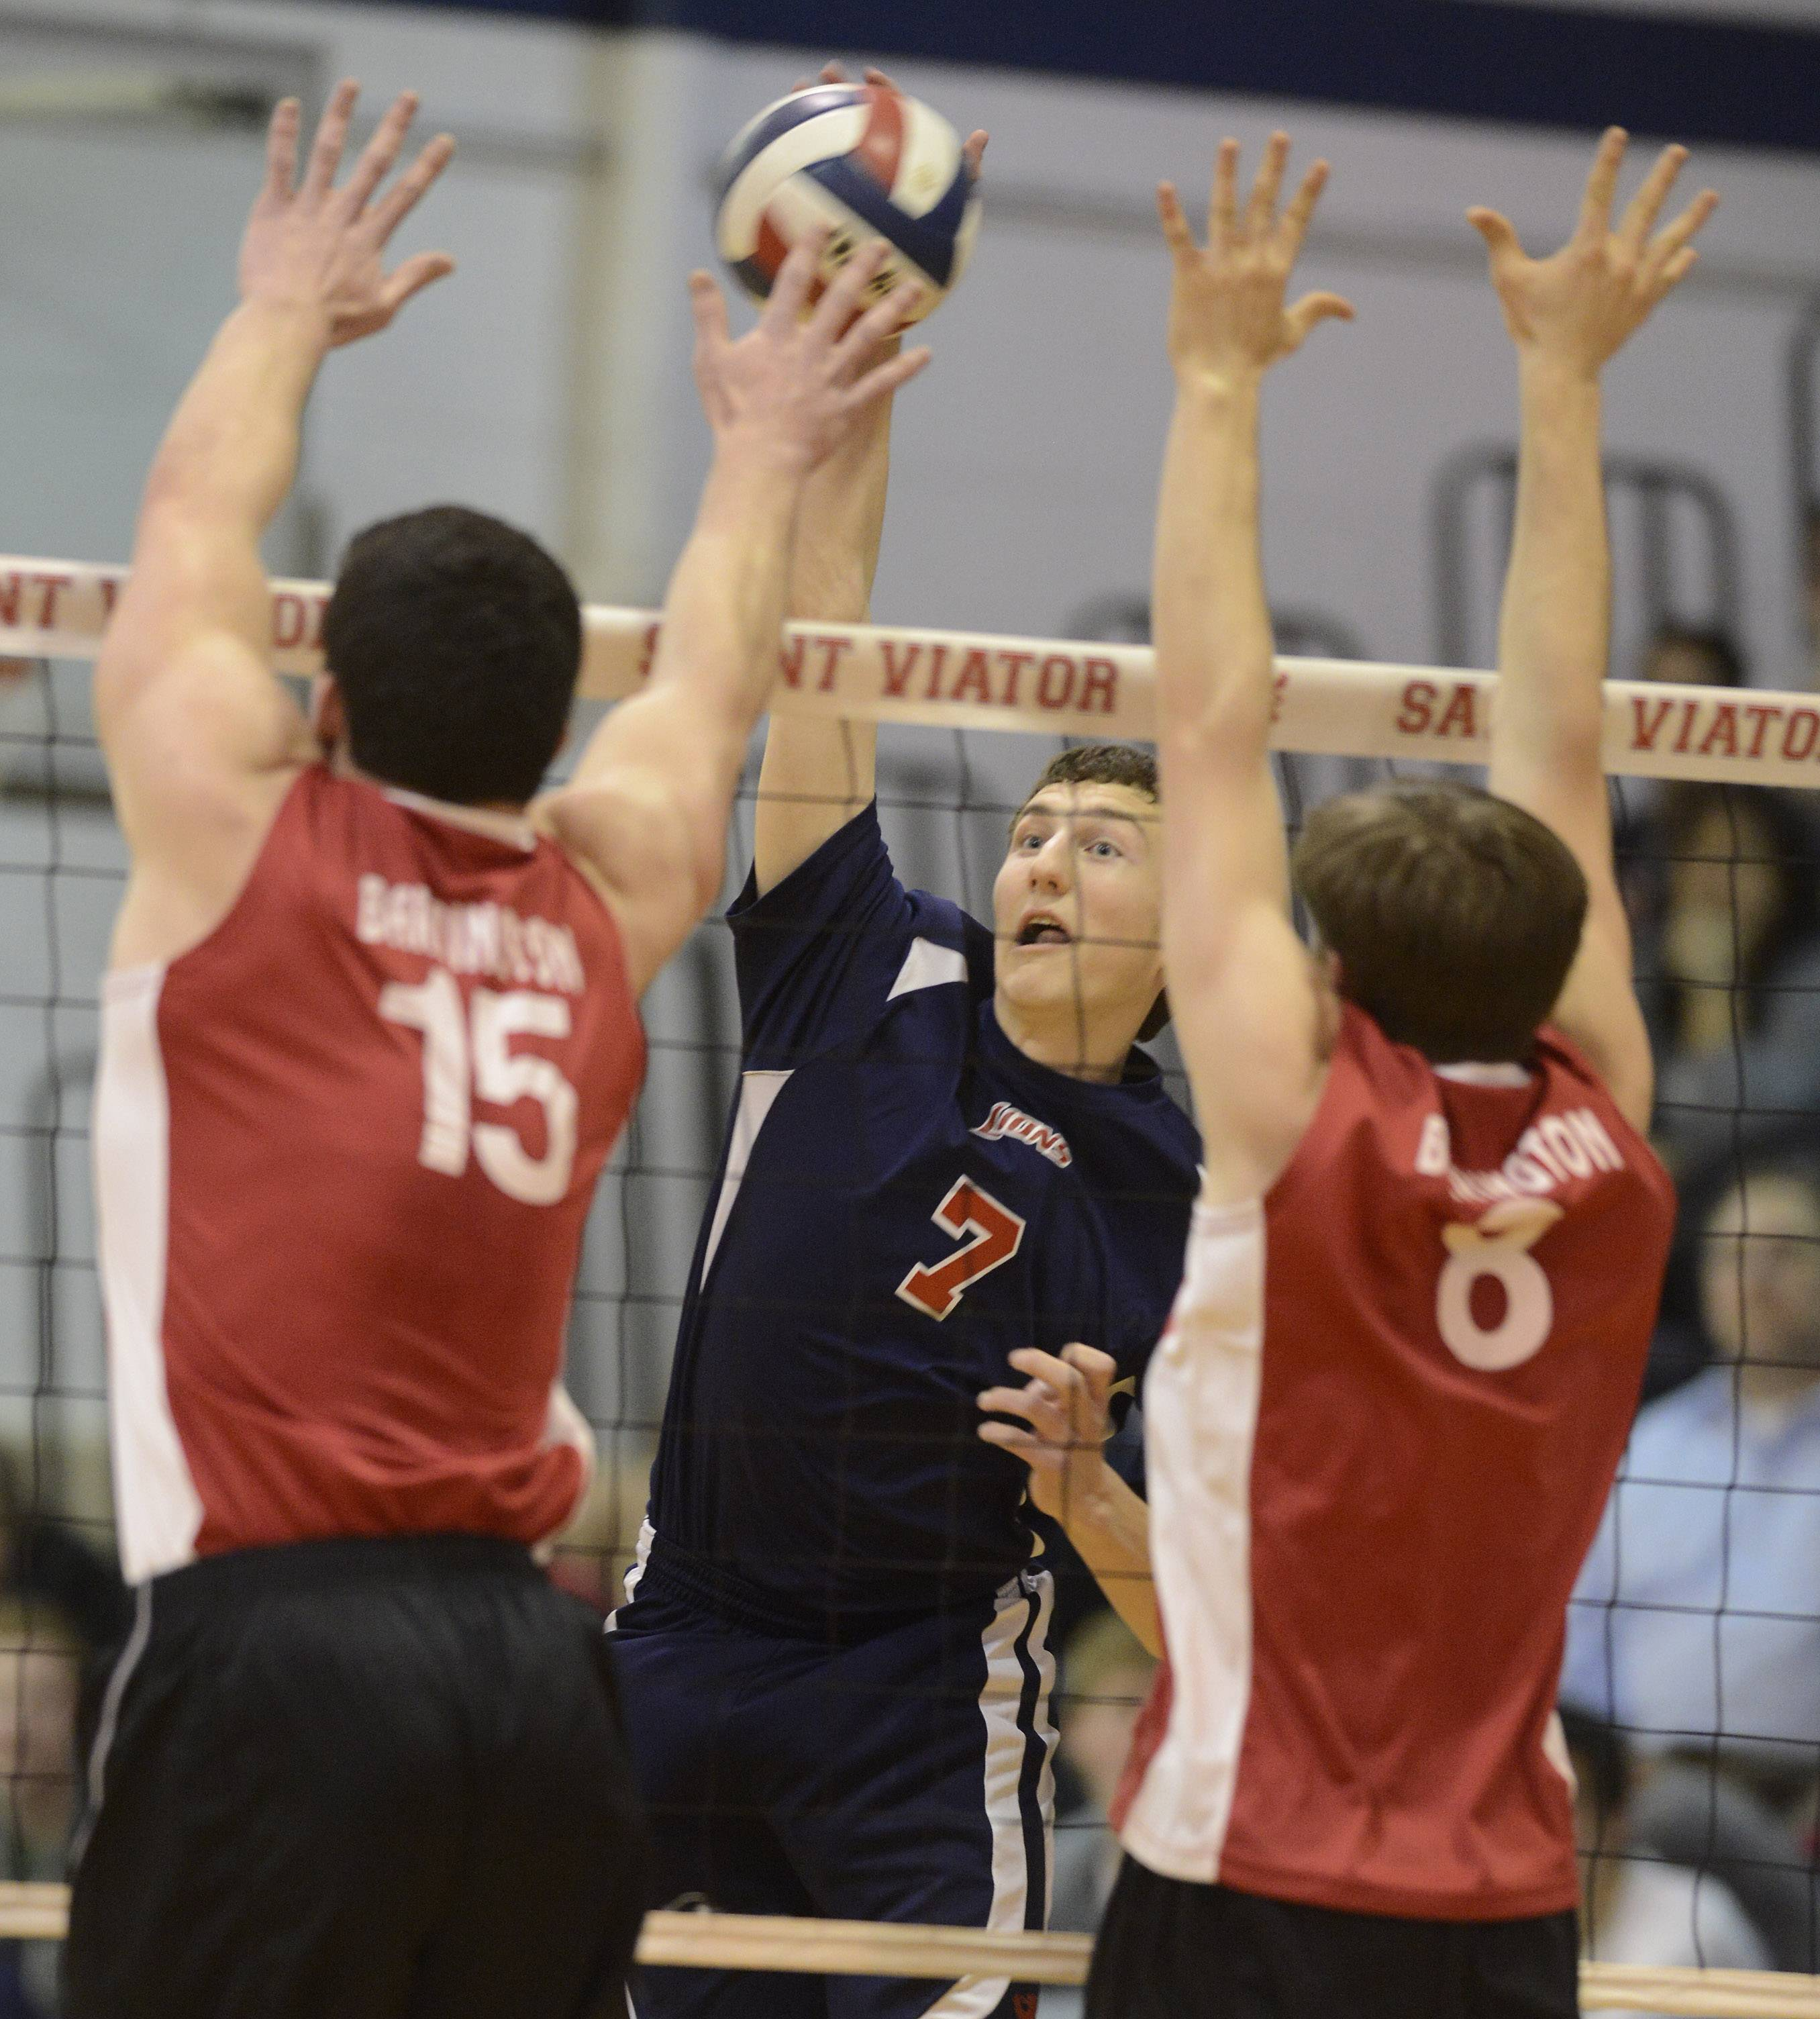 St. Viator's Ethan Wolf, middle, tries for a kill between Barrington's Colin Castagna, left, and Sean Frey during Tuesday's game in Arlington Heights.